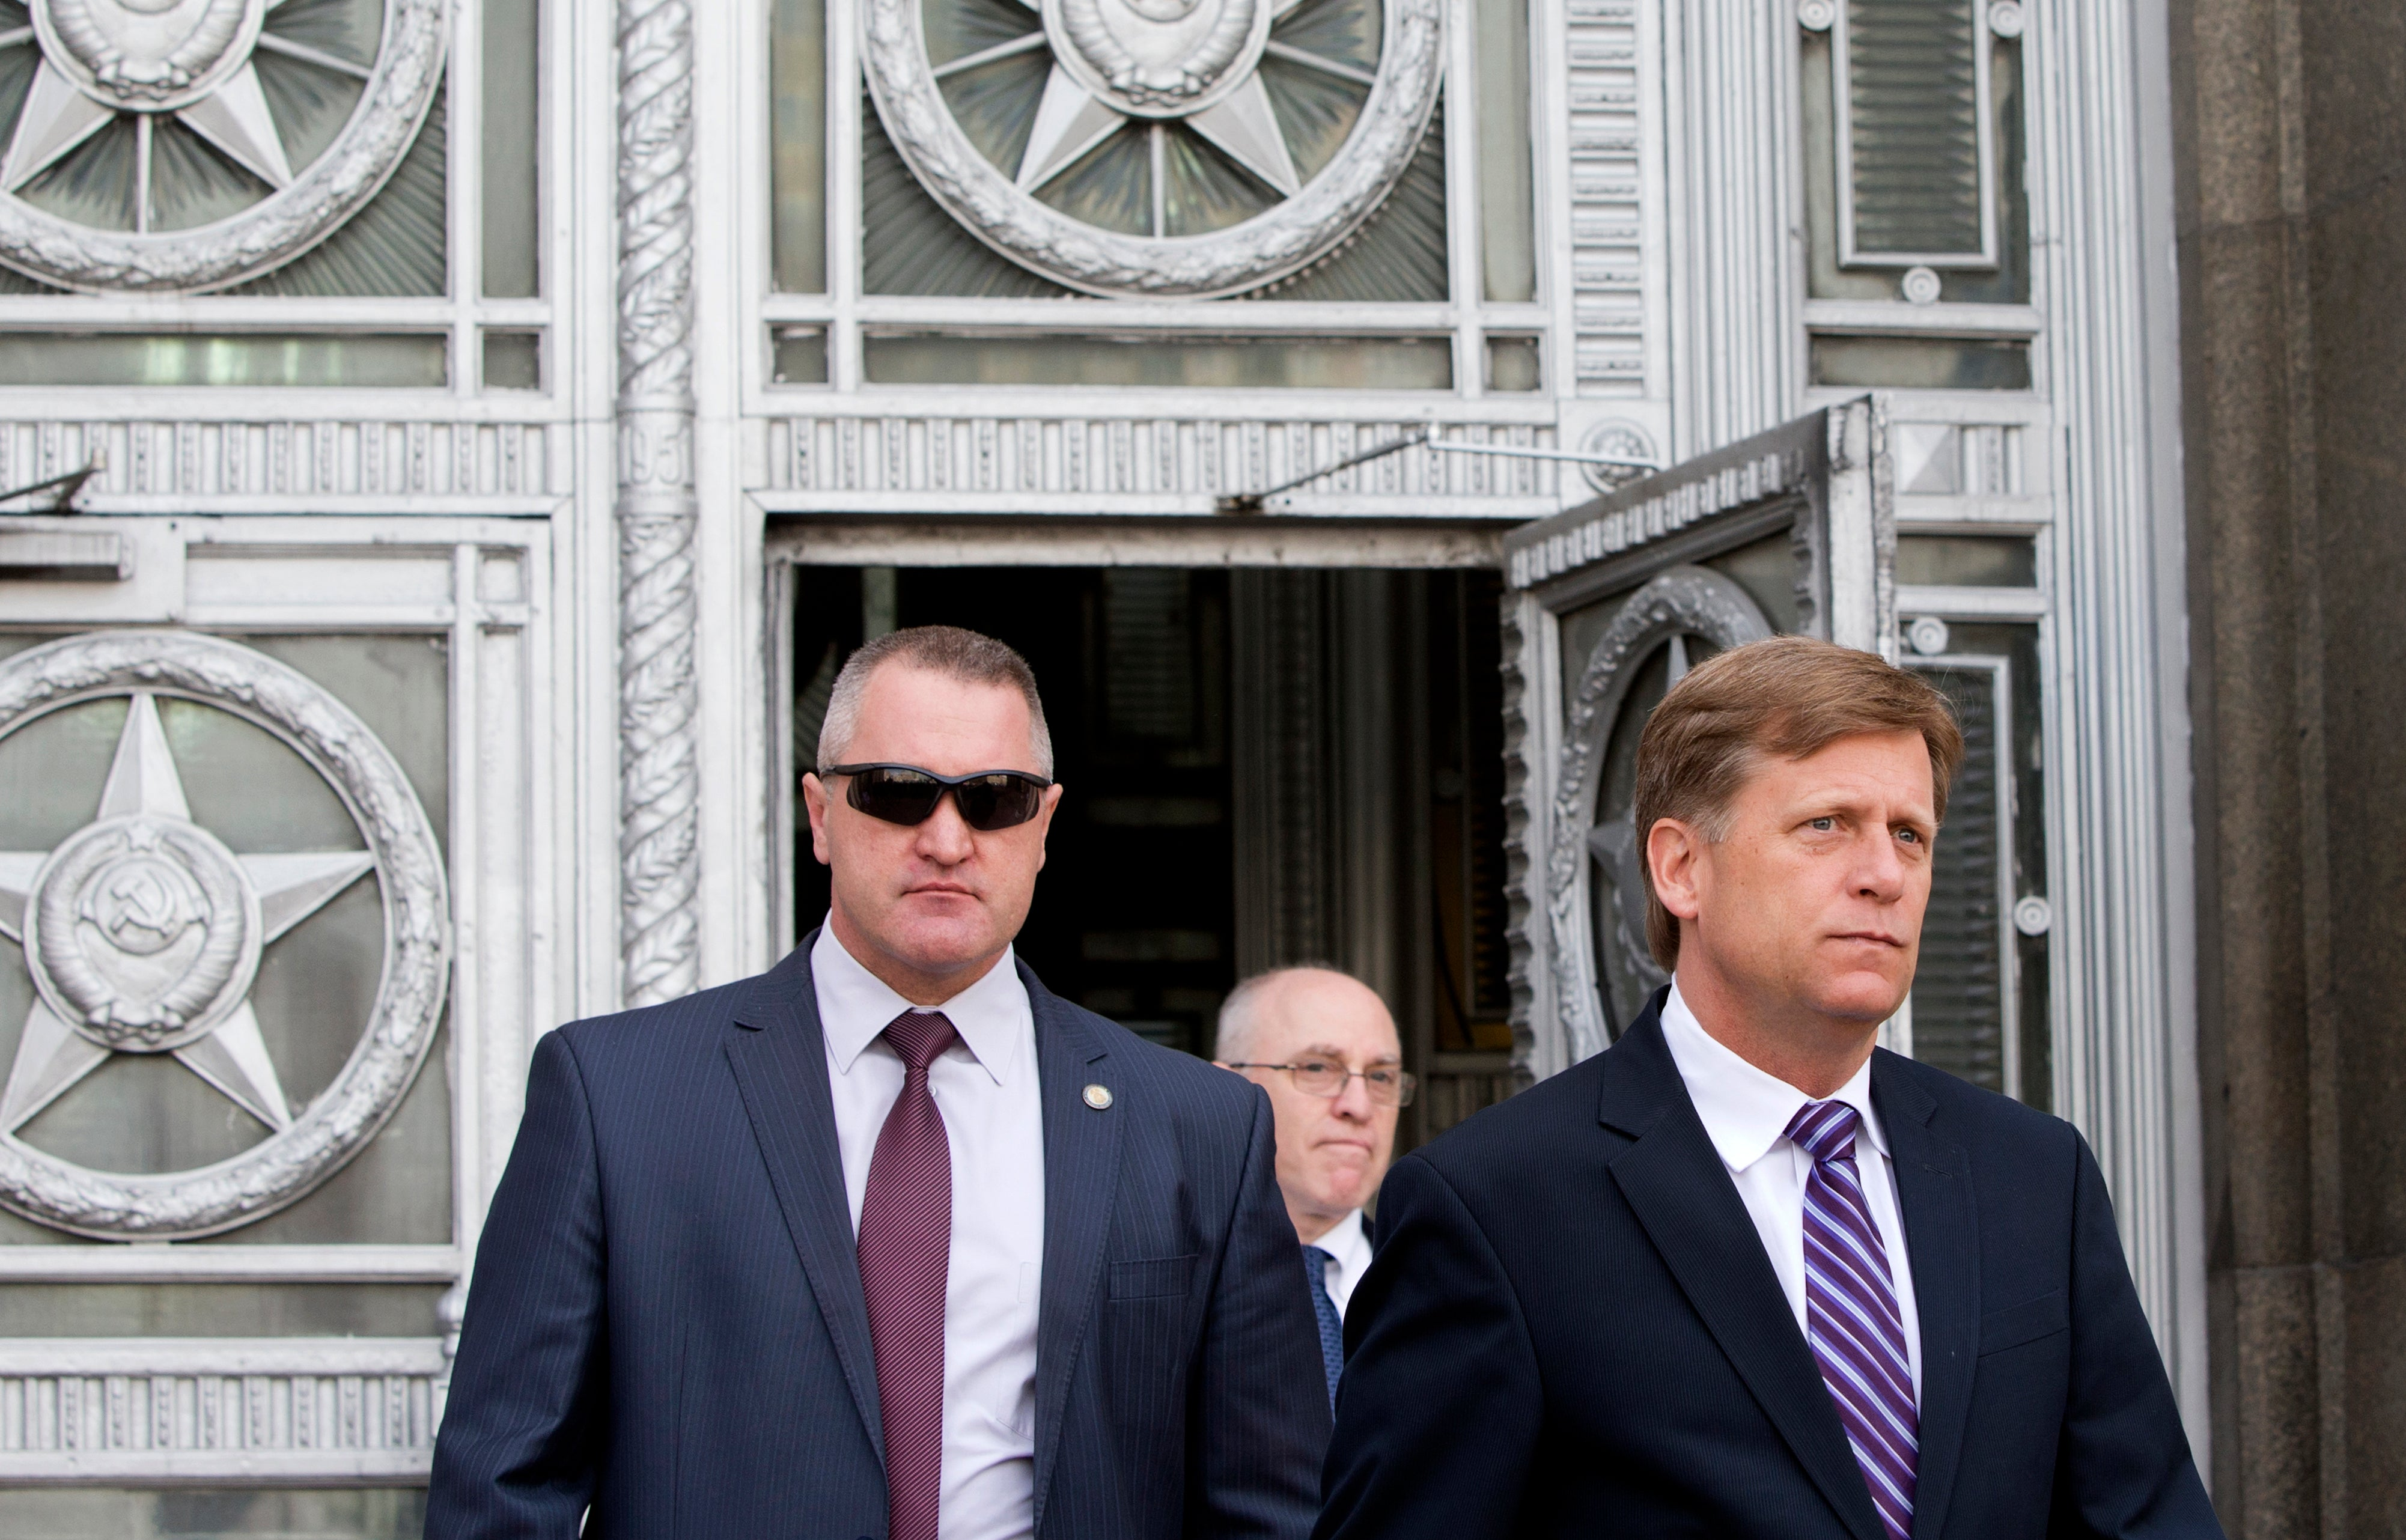 McFaul walks out of an imposing government building with an individual who appears to be a security guard by his side.